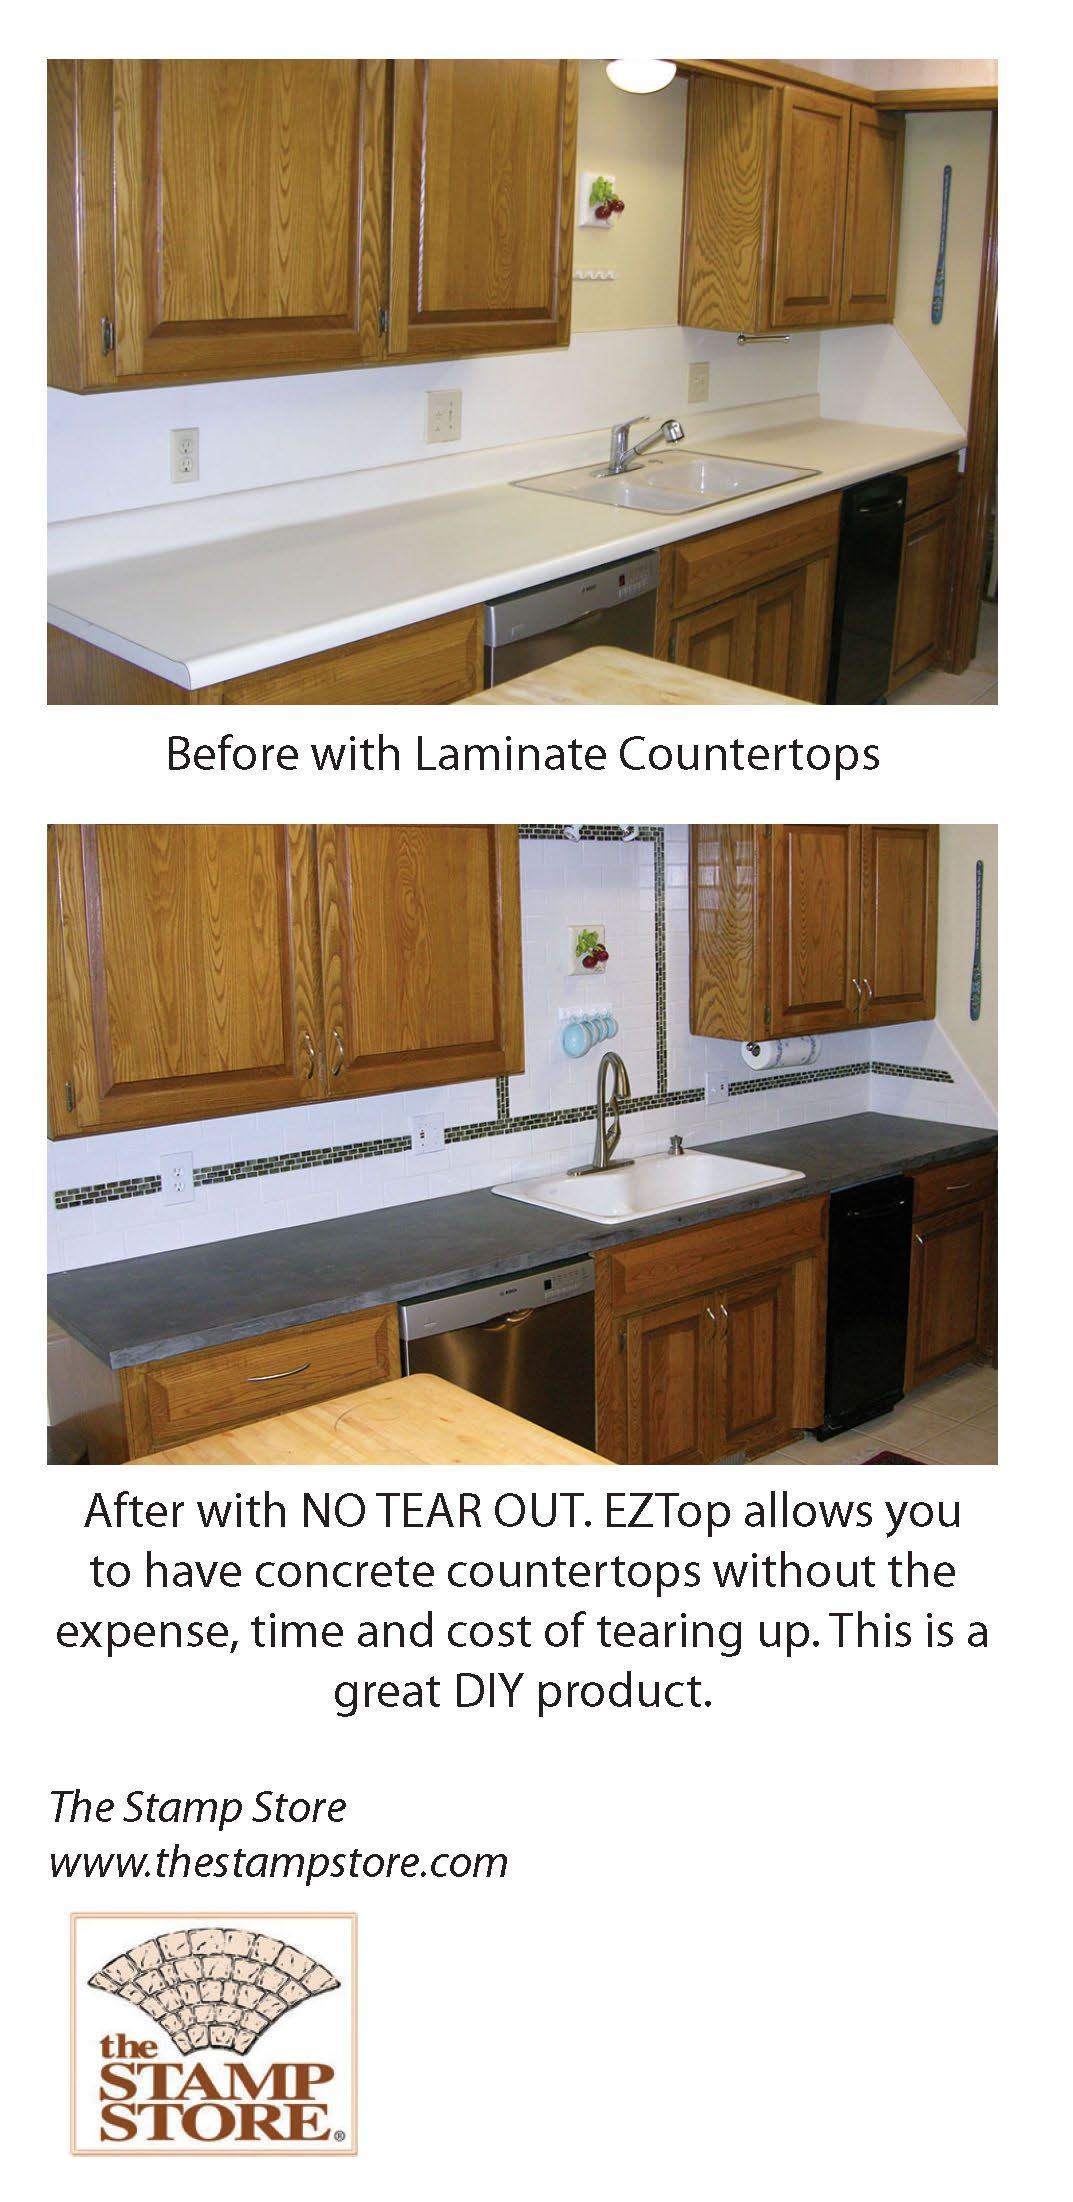 Ez Top A Great Diy Product That Can Go Over Laminate Tile And Granite No Tear Out Of Existi Cheap Kitchen Makeover Kitchen Inspirations Old Home Renovation